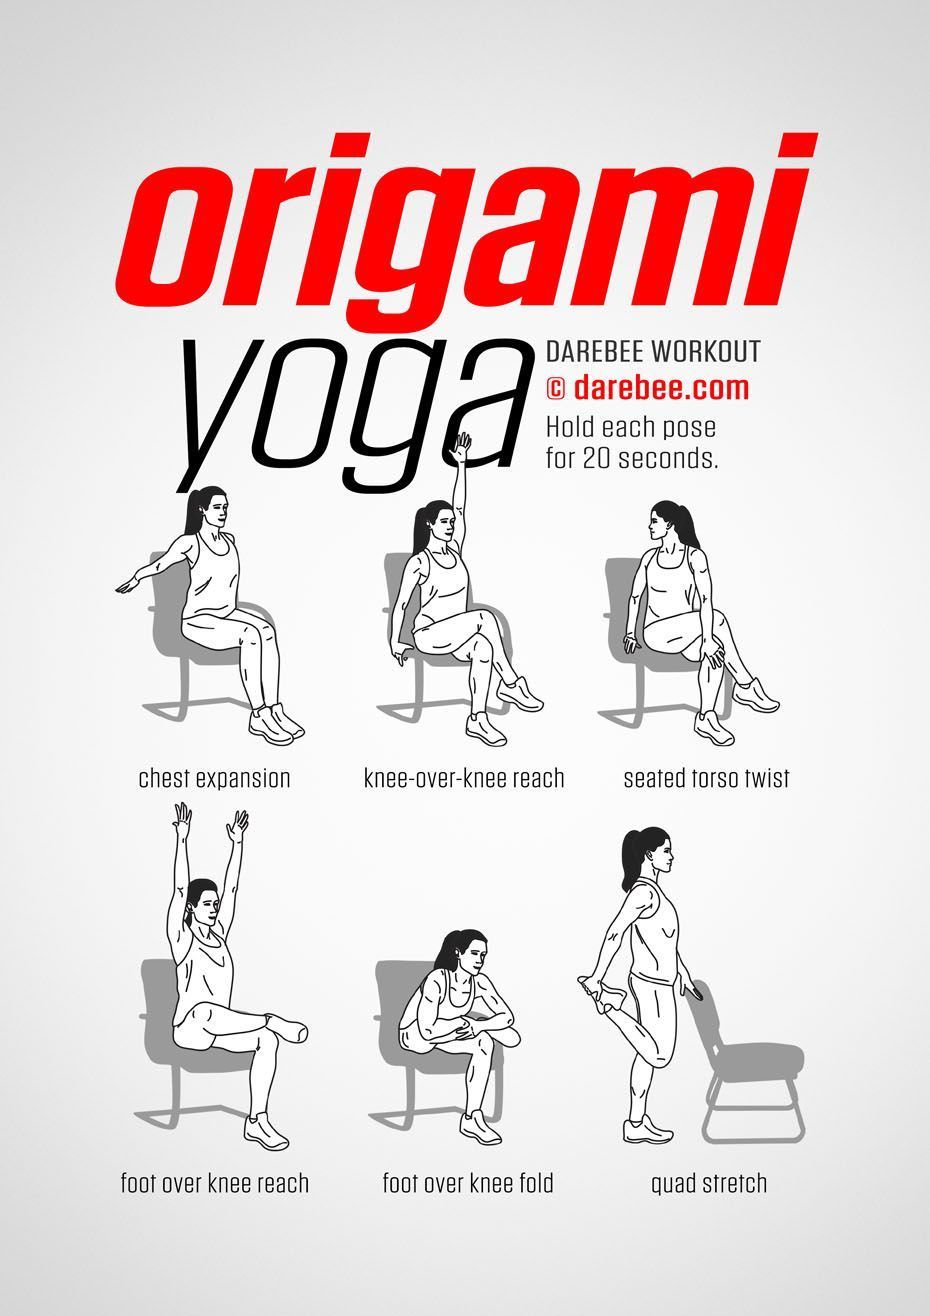 Origami Yoga Workout #ChairWorkout | Origami yoga, Workout ...